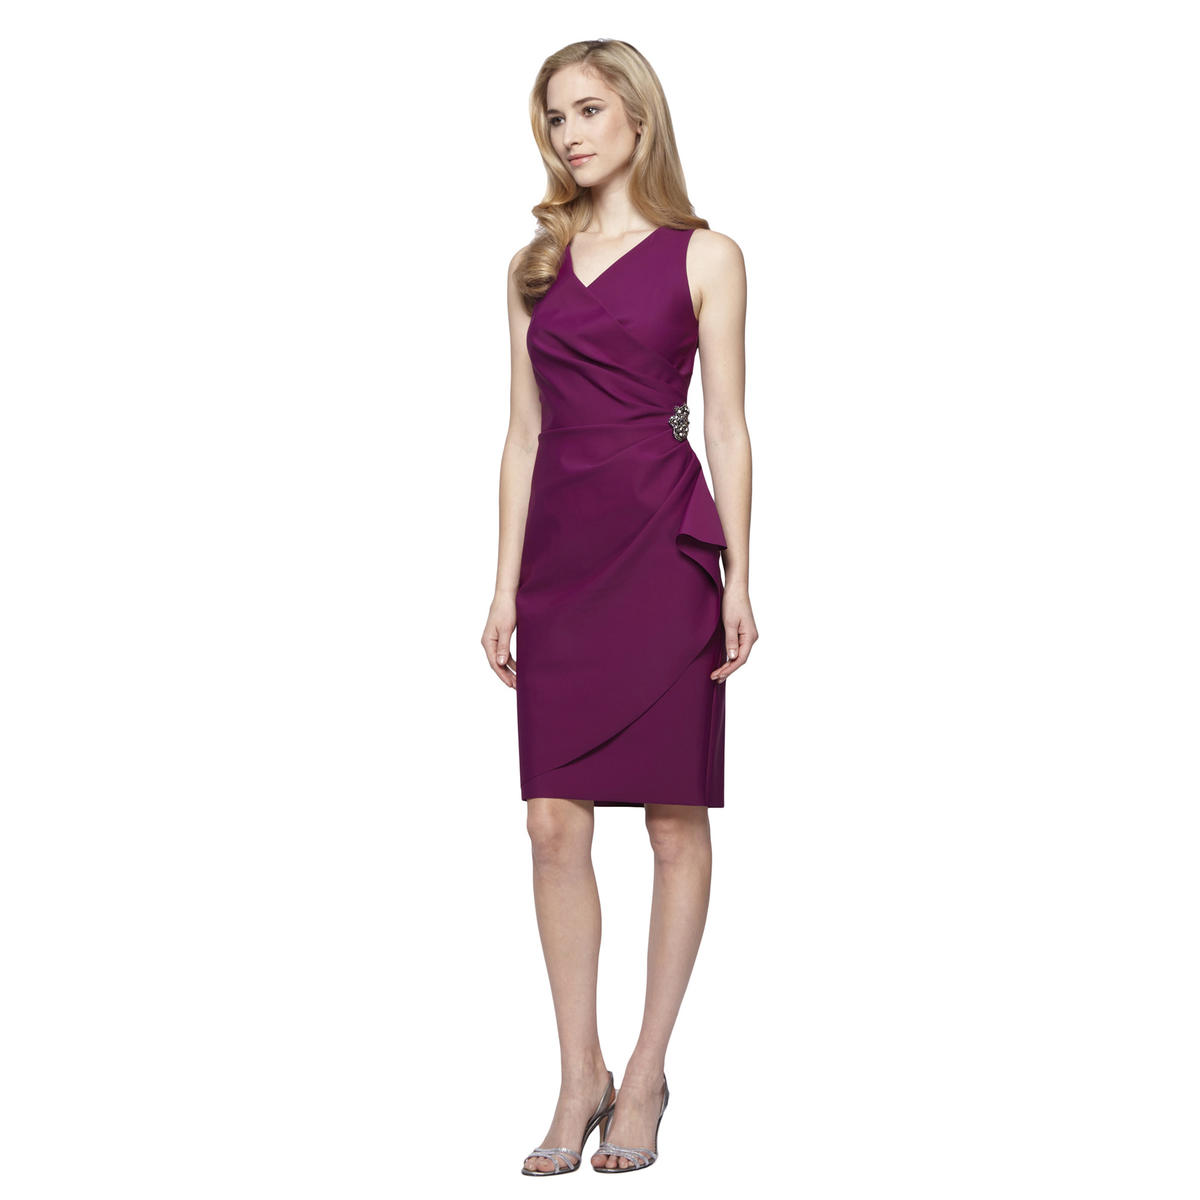 4c9afab8a9e66 ALEX APPAREL GROUP INC - Sleeveless Ruched V-Neck Wrap Dress